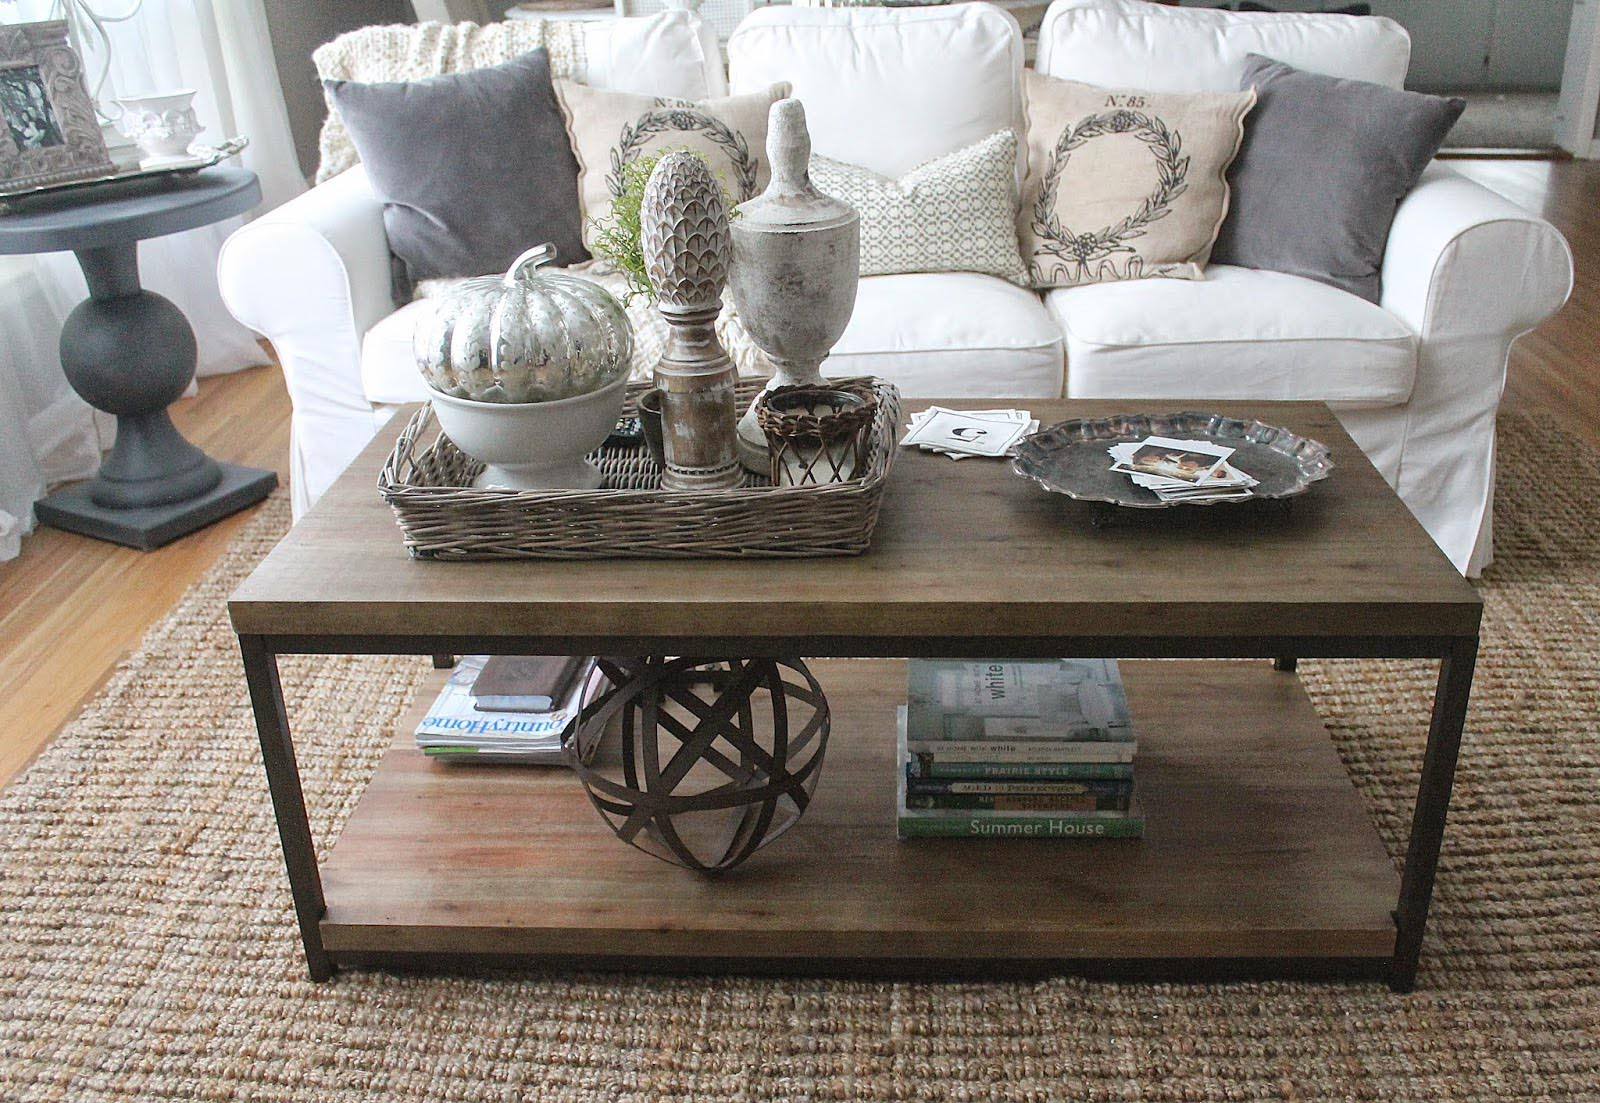 Cool Coffee Table for Catchy Interiors and Artistic Souls